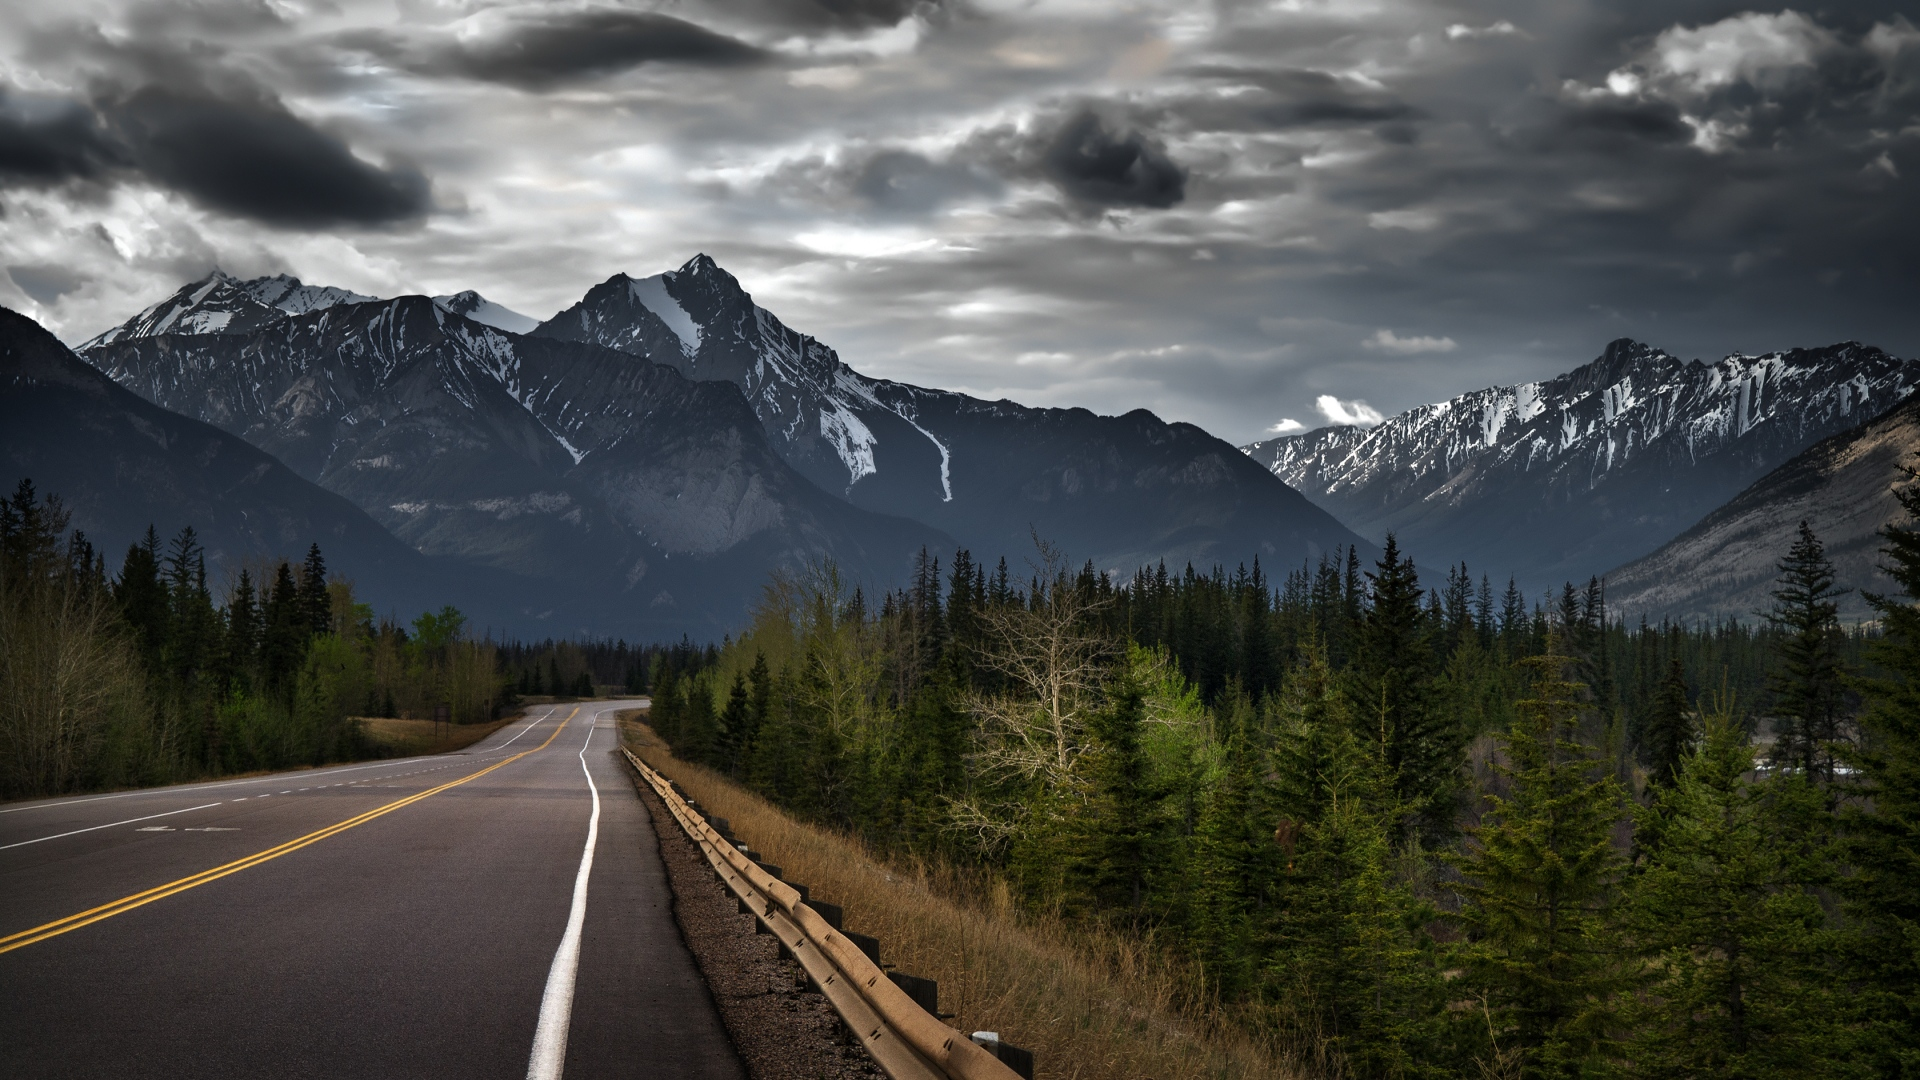 Top Wallpaper Mountain Hexagon - canada-mountain-road-wallpaper-61832-63678-hd-wallpapers  Image_732422.jpg